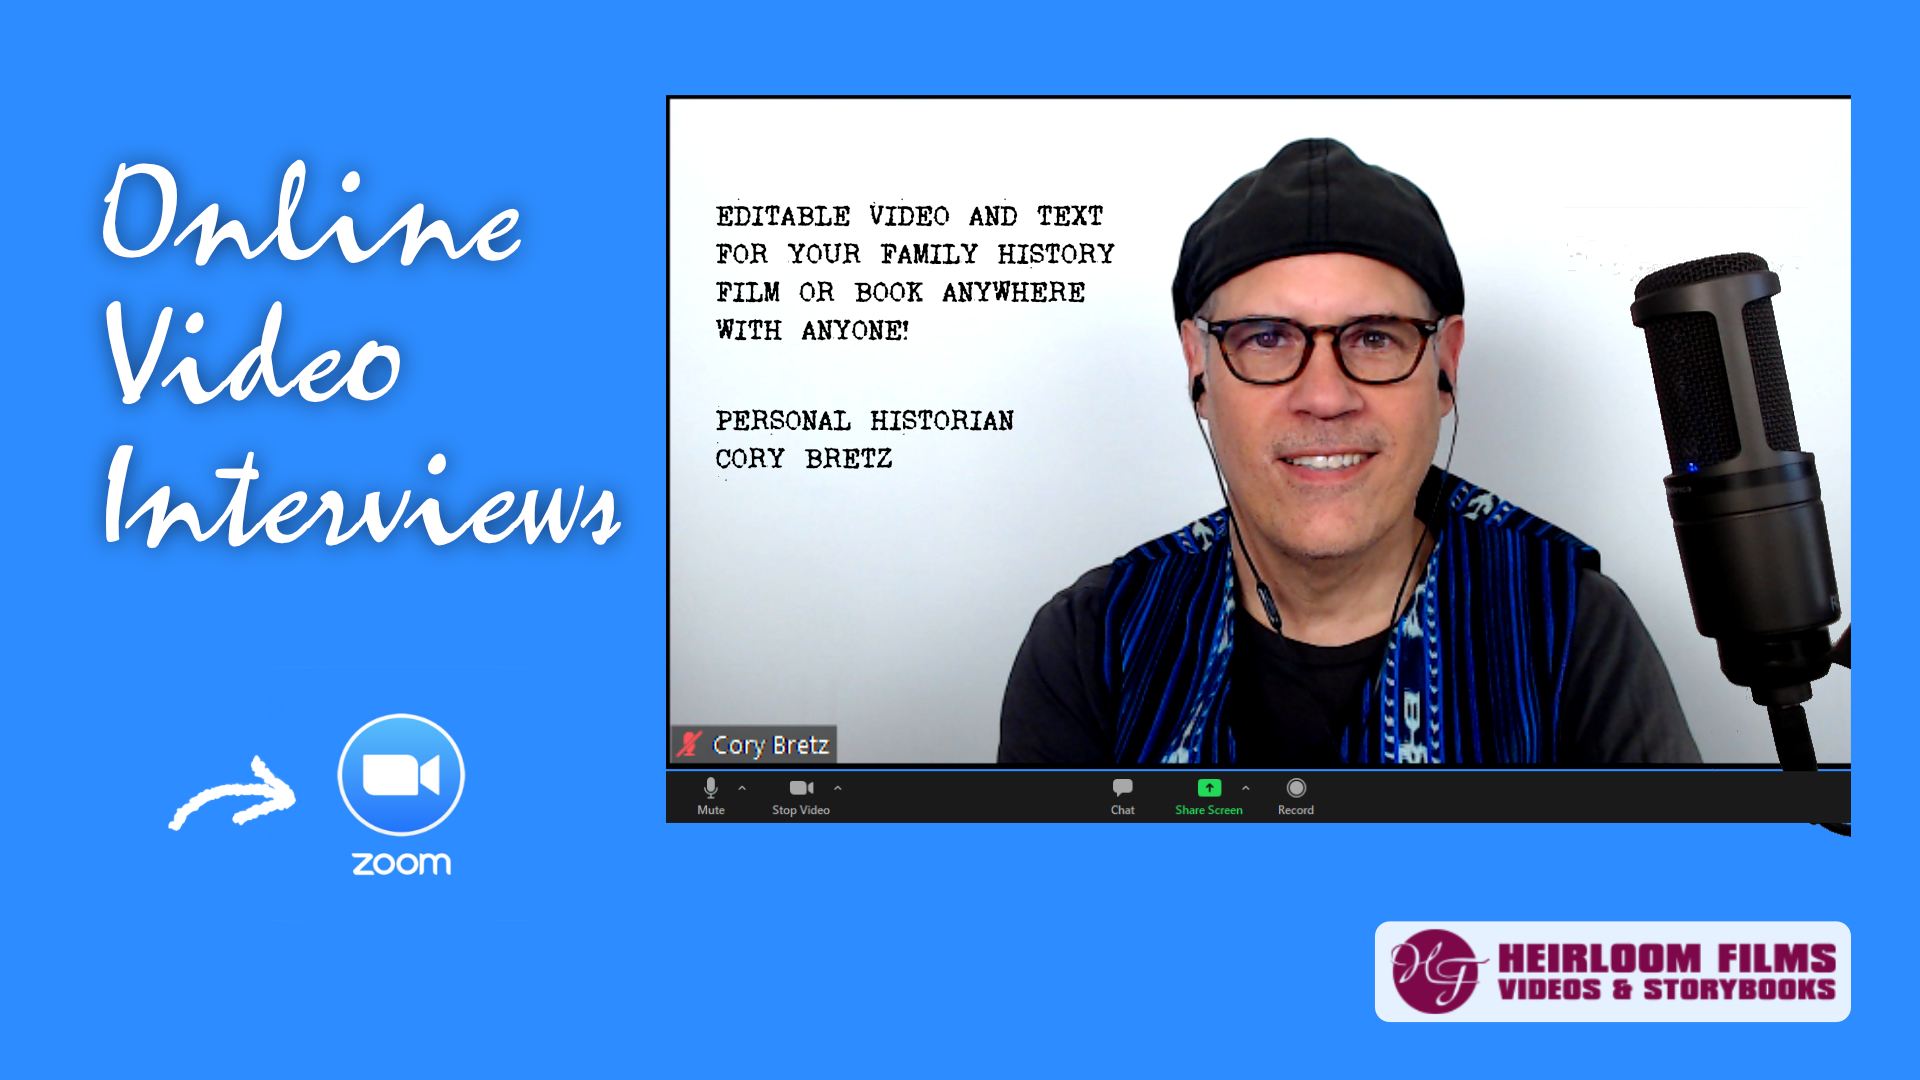 Online Video Interviews With Personal Historian Cory Bretz